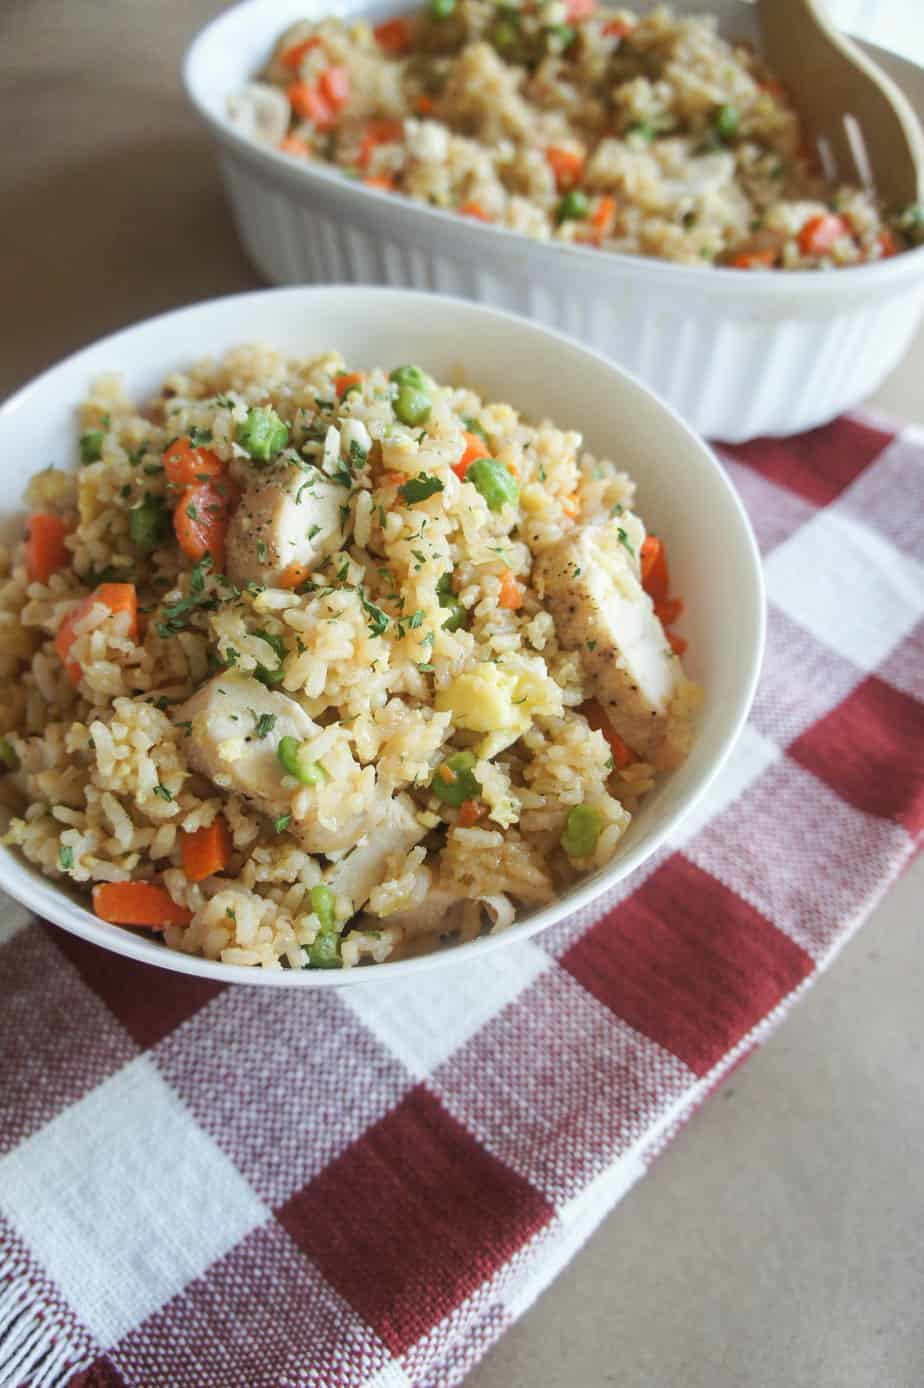 Chicken Fried Rice is the perfect summertime dish because it is made in under 30 minutes from start to finish!